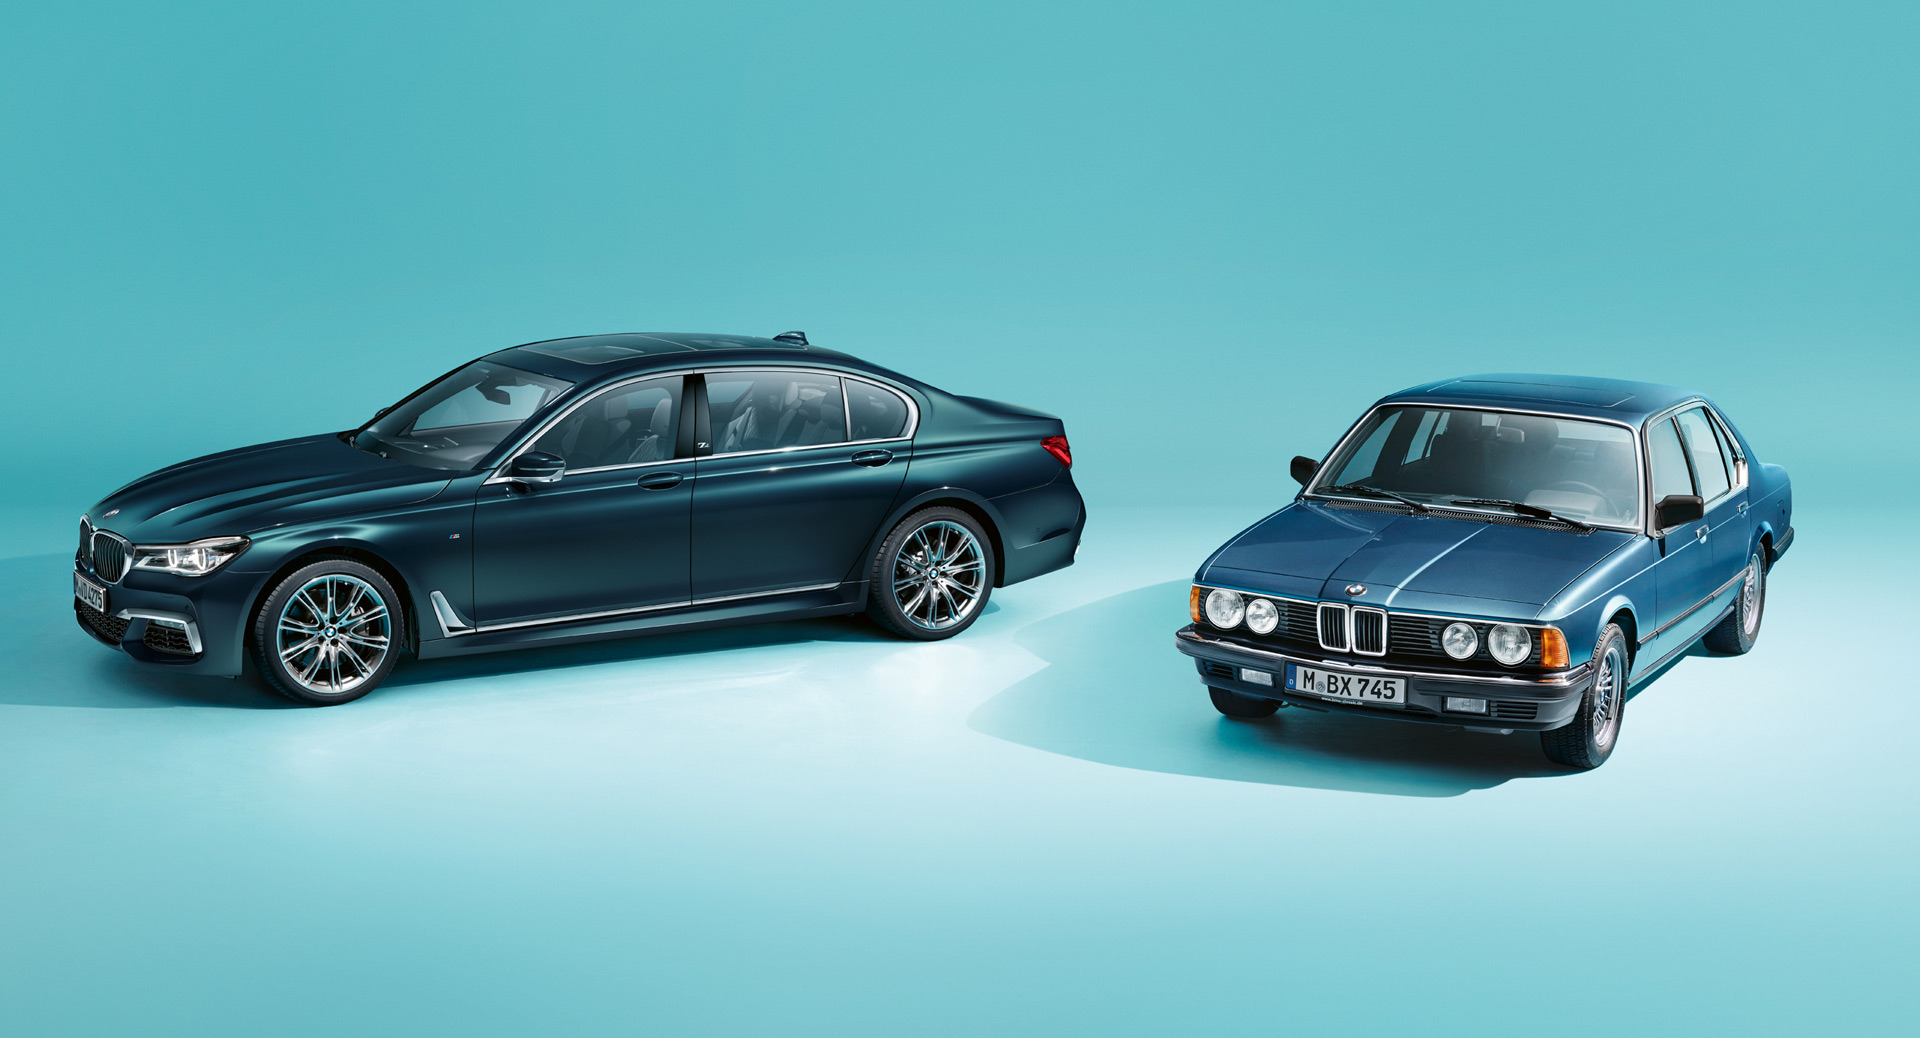 BMW celebrates 40 years of the 7-Series with special edition